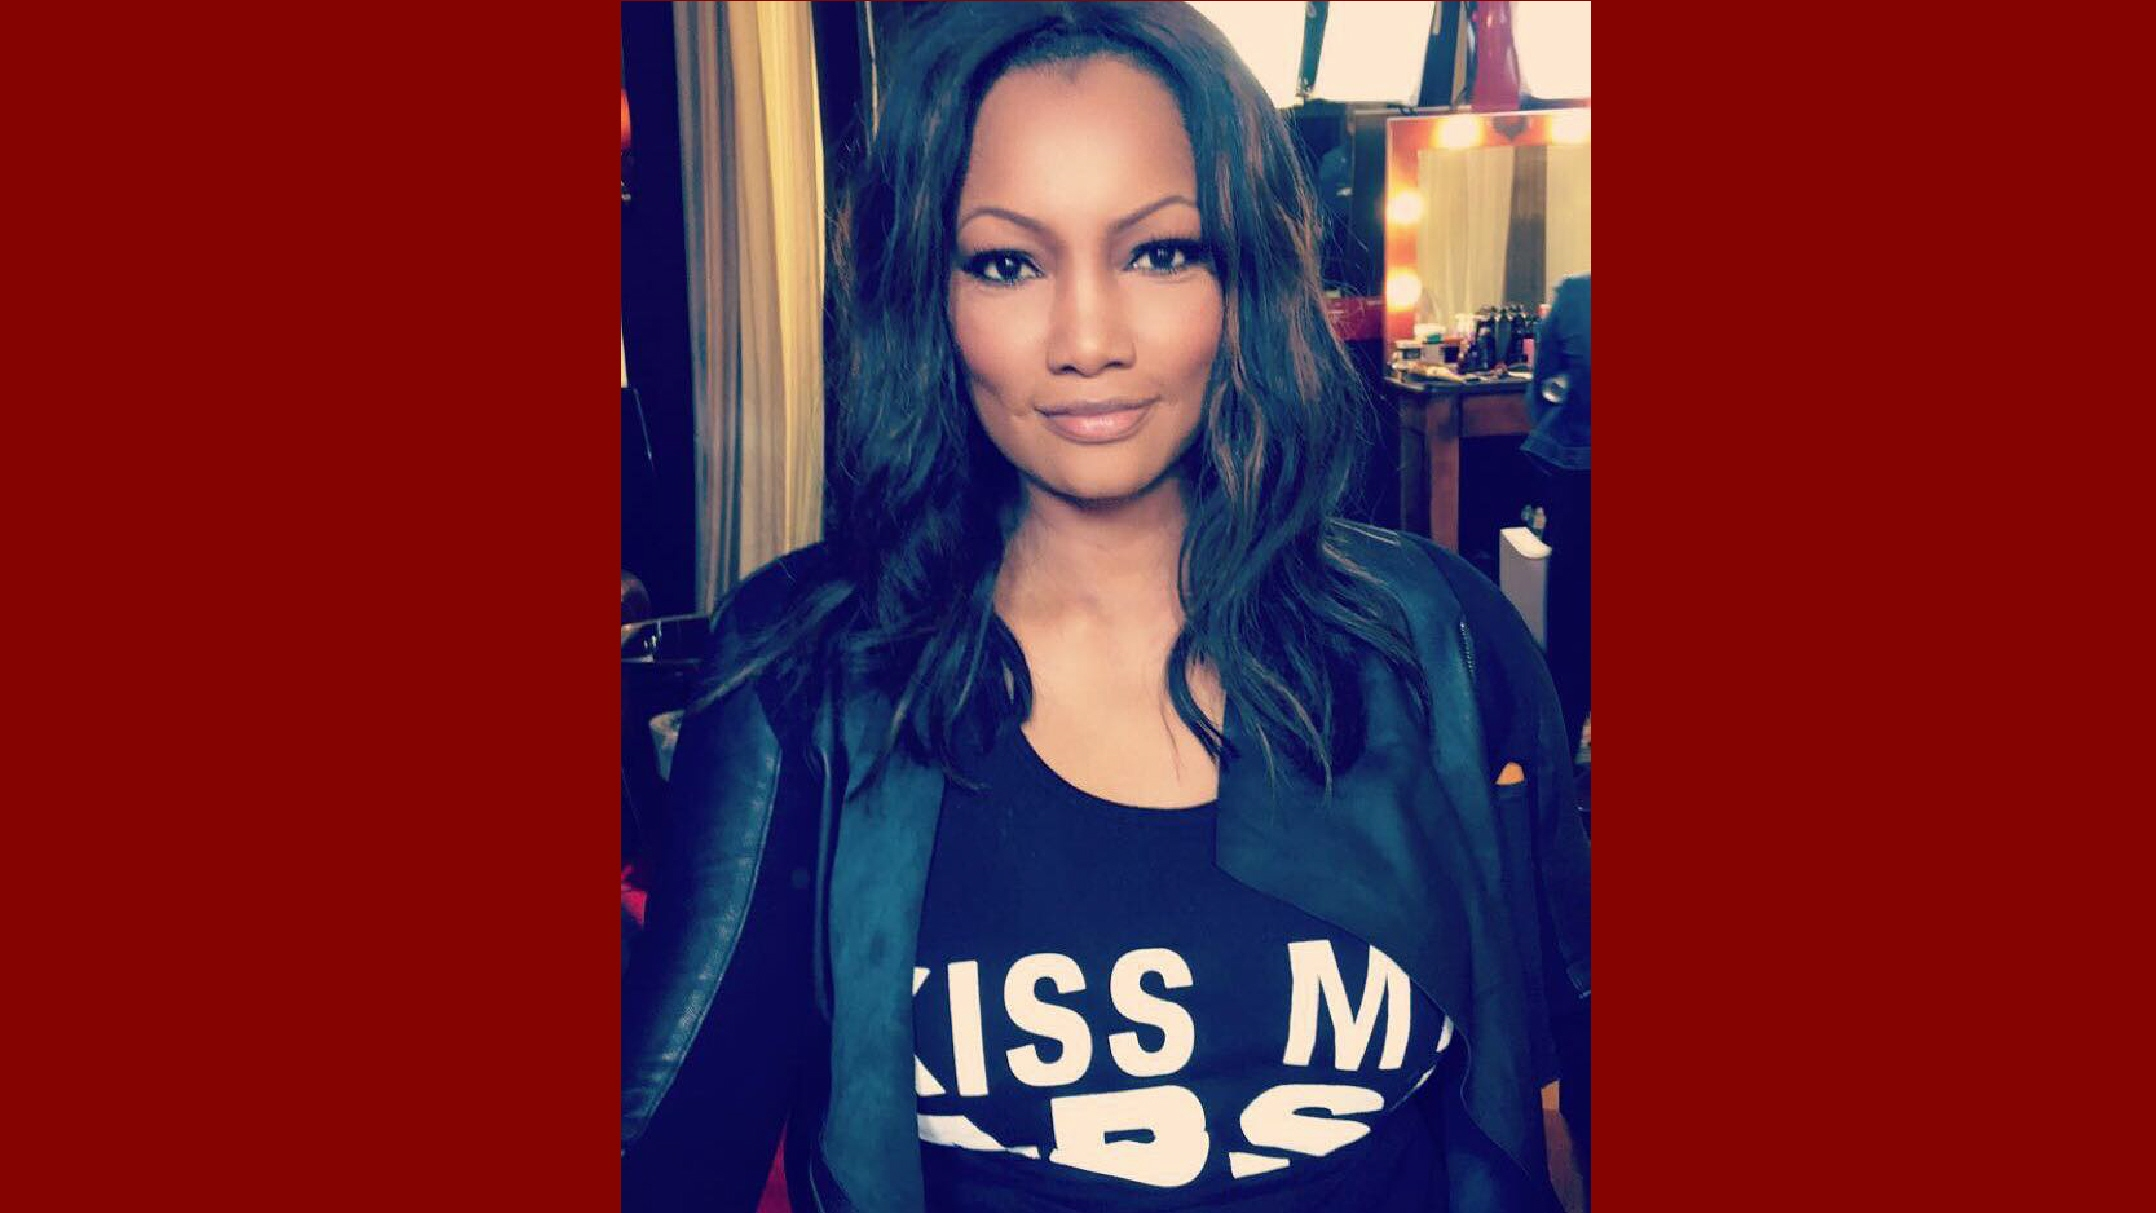 Garcelle beauvais free nude pics